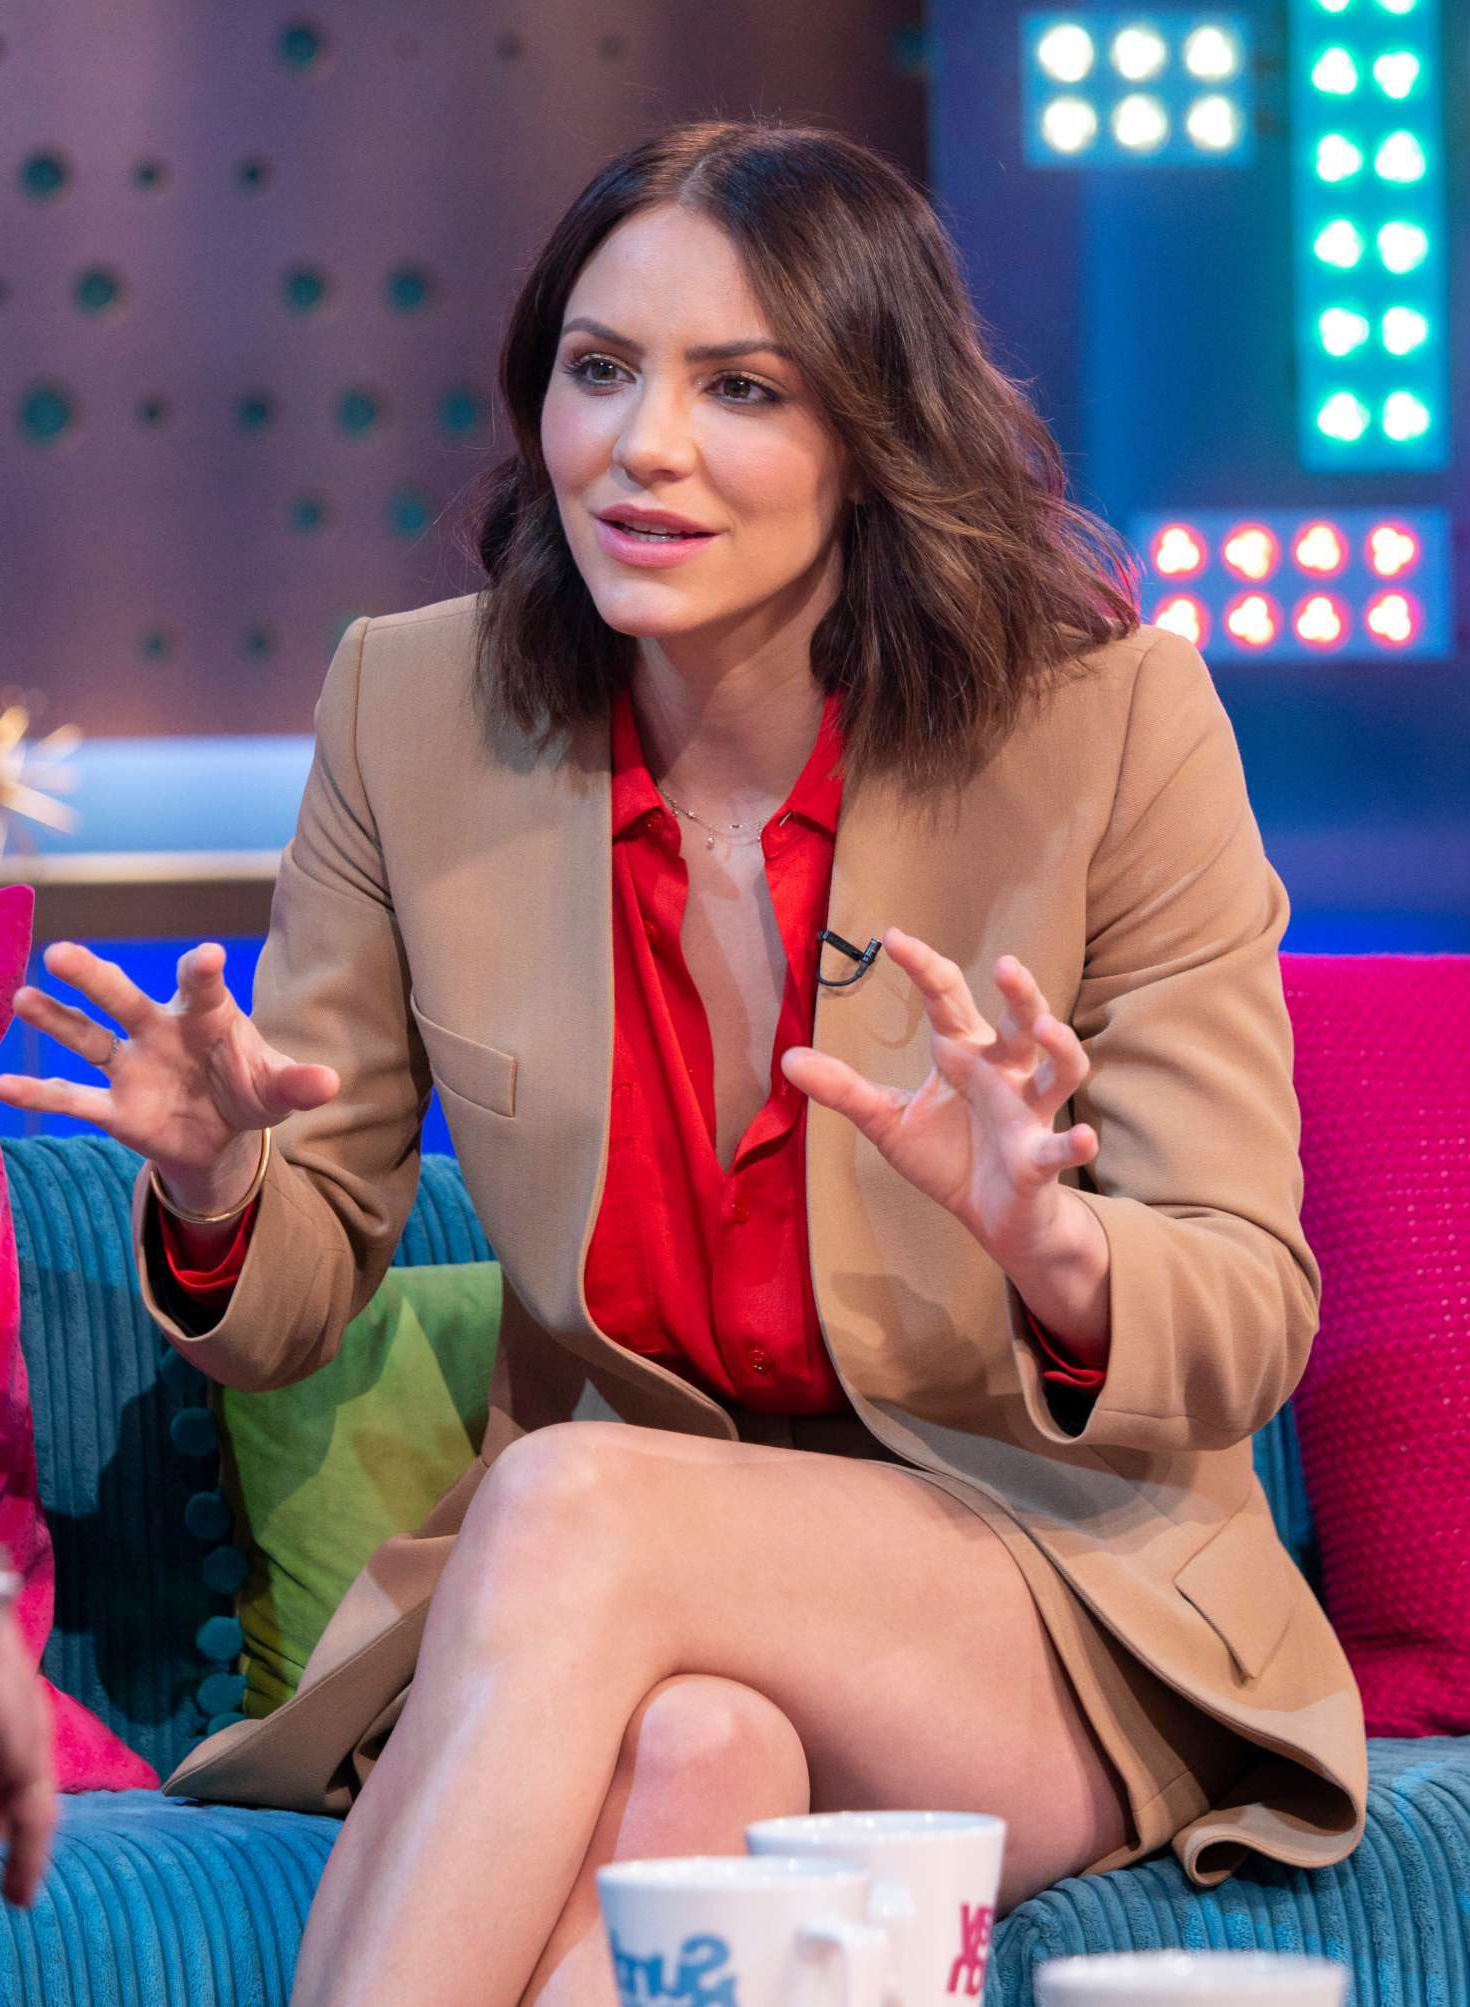 funny Katharine McPhee at the Sunday Brunch Show in London, 2019